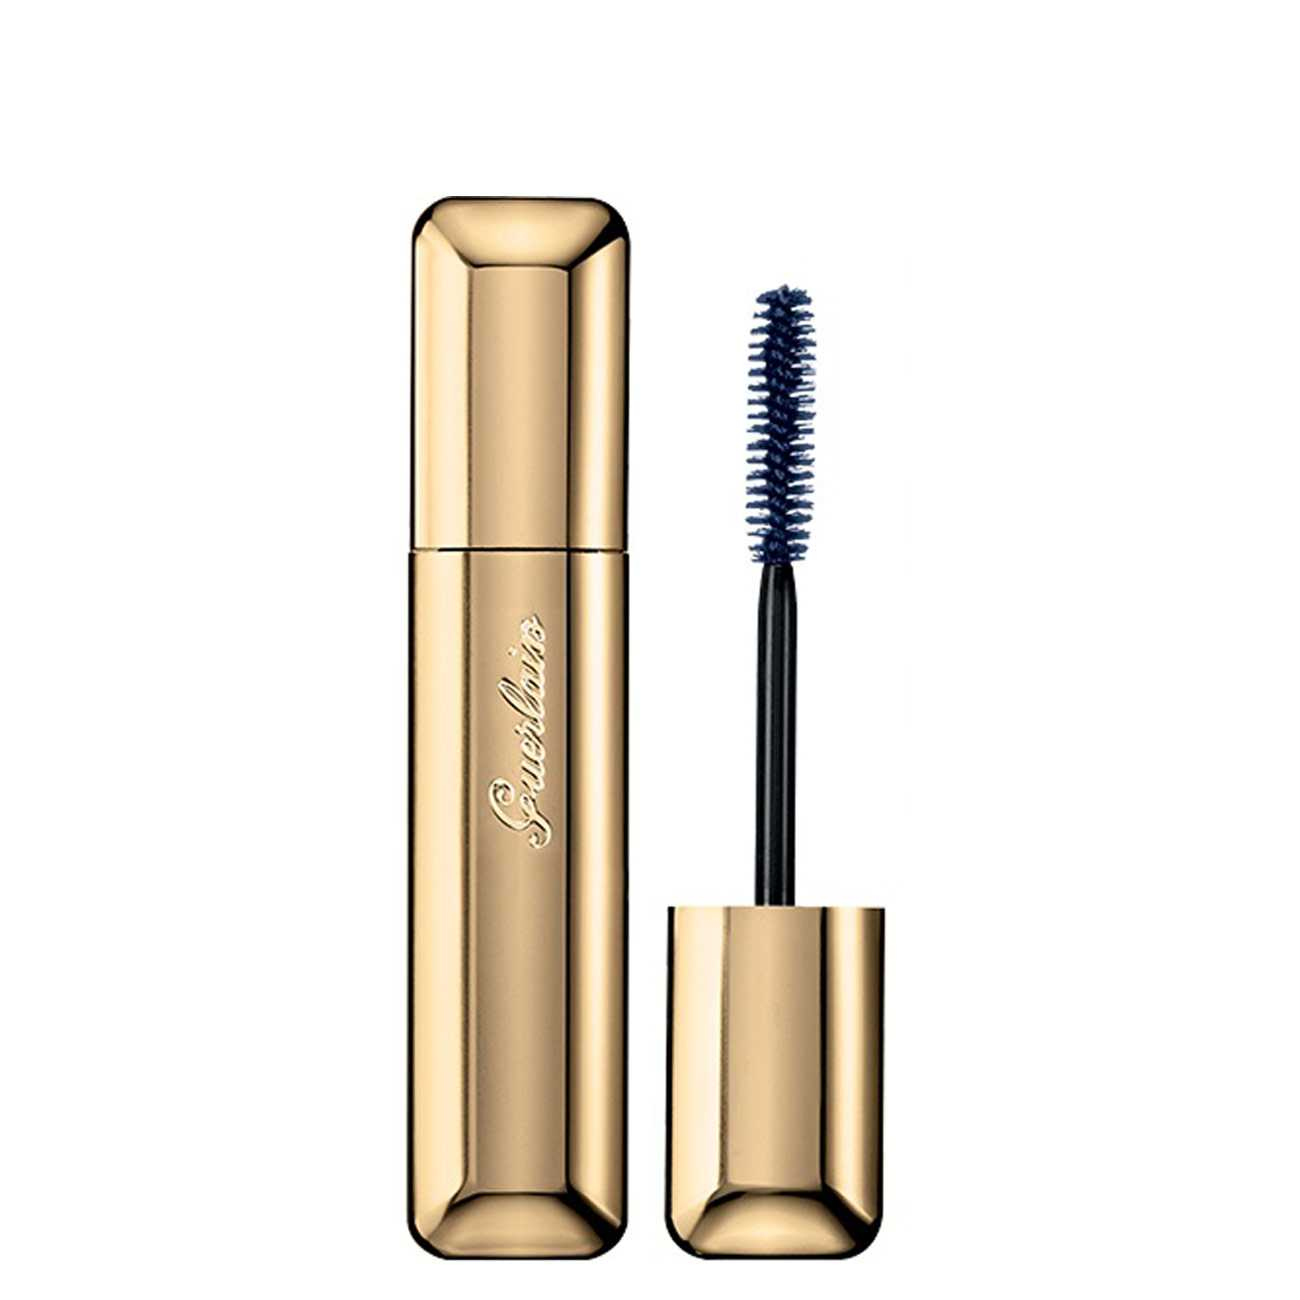 CILS D'ENFER MAXI LASH 8.5 ML Marine 4 imagine produs